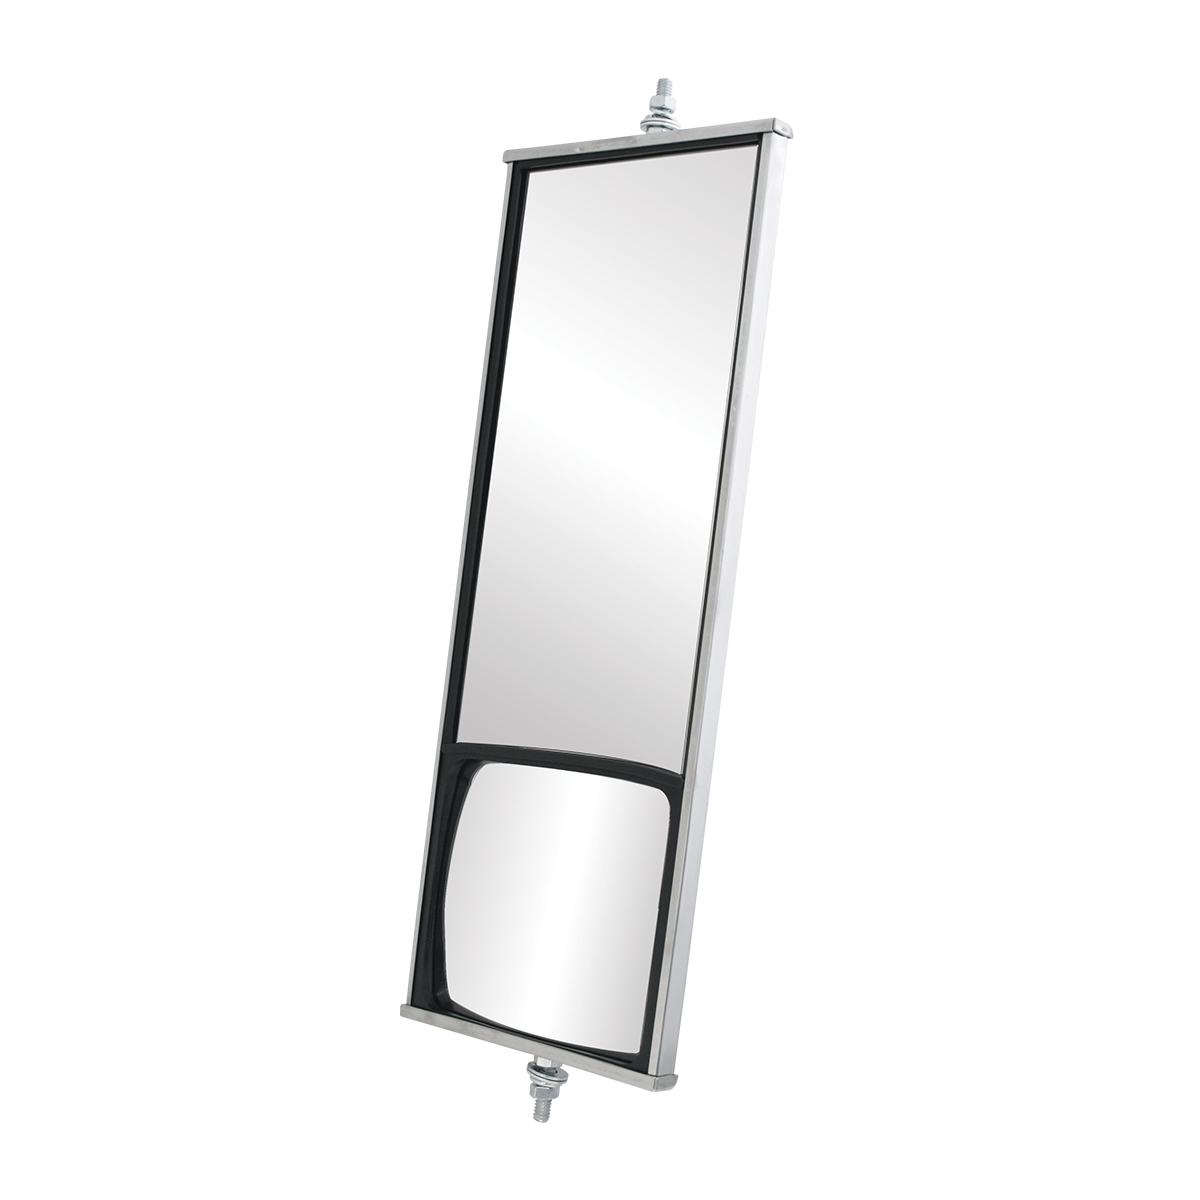 33230 West Coast Mirror in Convex and Flat Combination